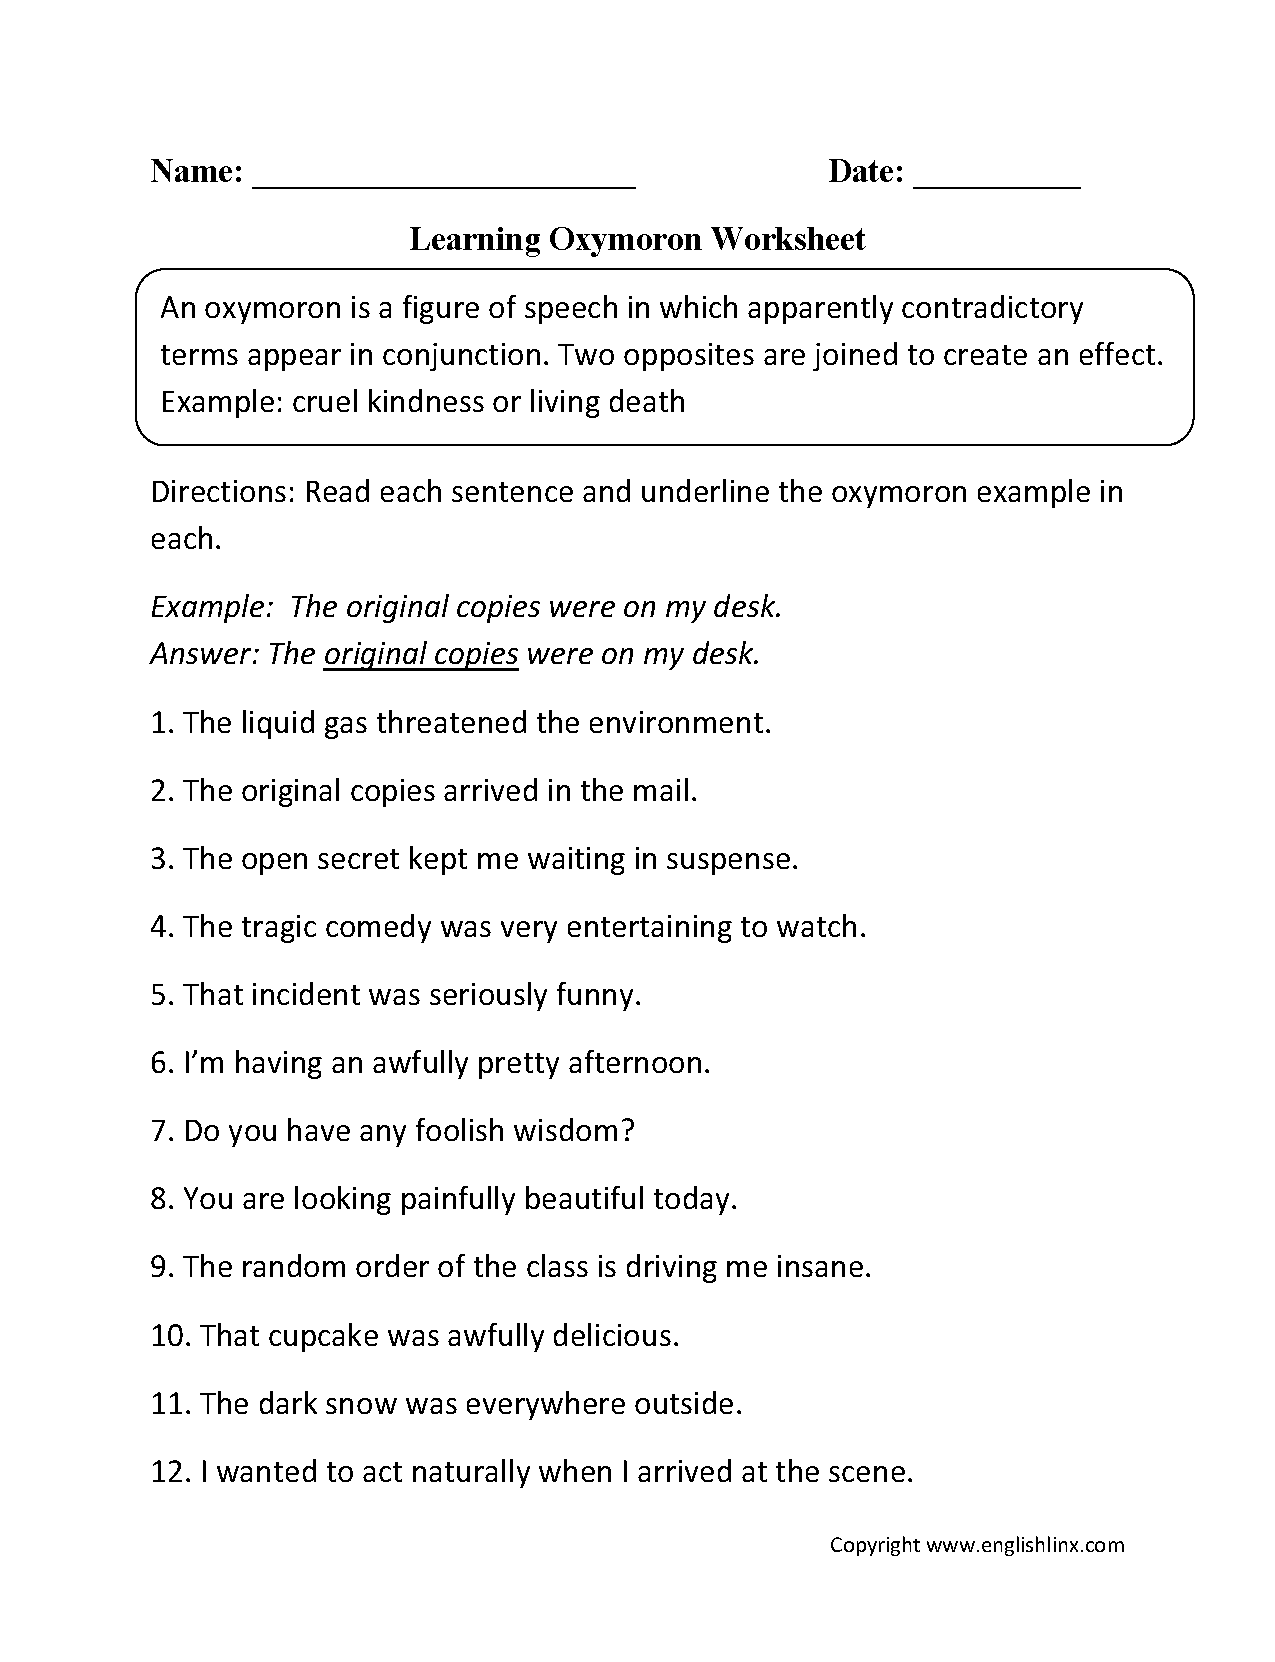 medium resolution of Content by Subject Worksheets   Figurative Language Worksheets   Figurative  language worksheet